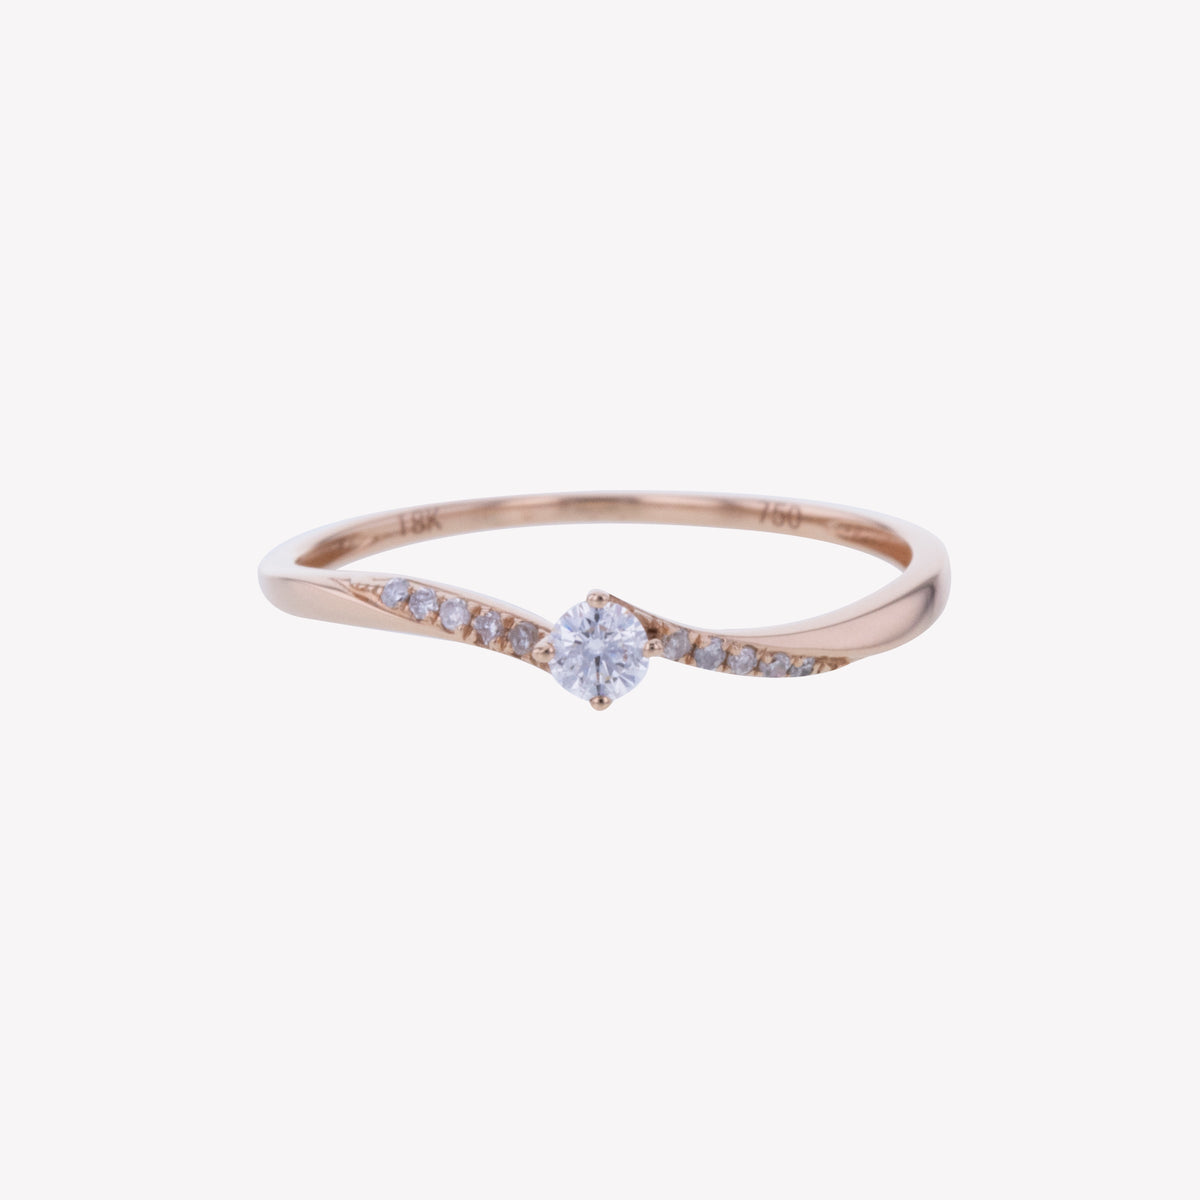 18K R/G Diamond Ring